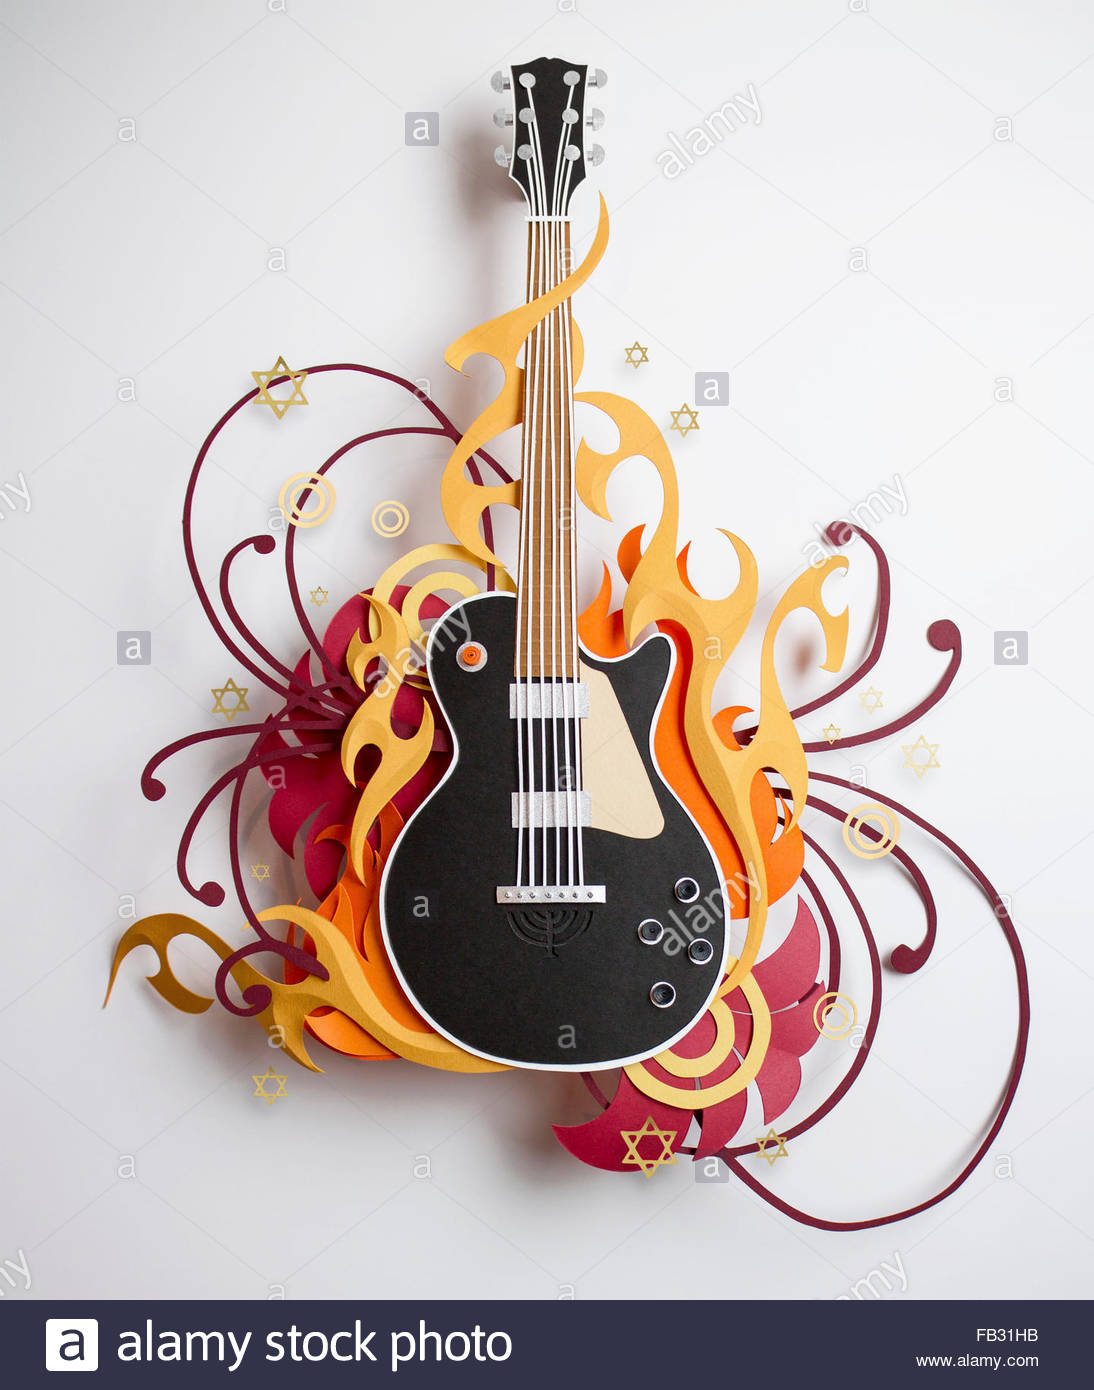 Stars and swirls surrounding paper craft guitar - Stock Image